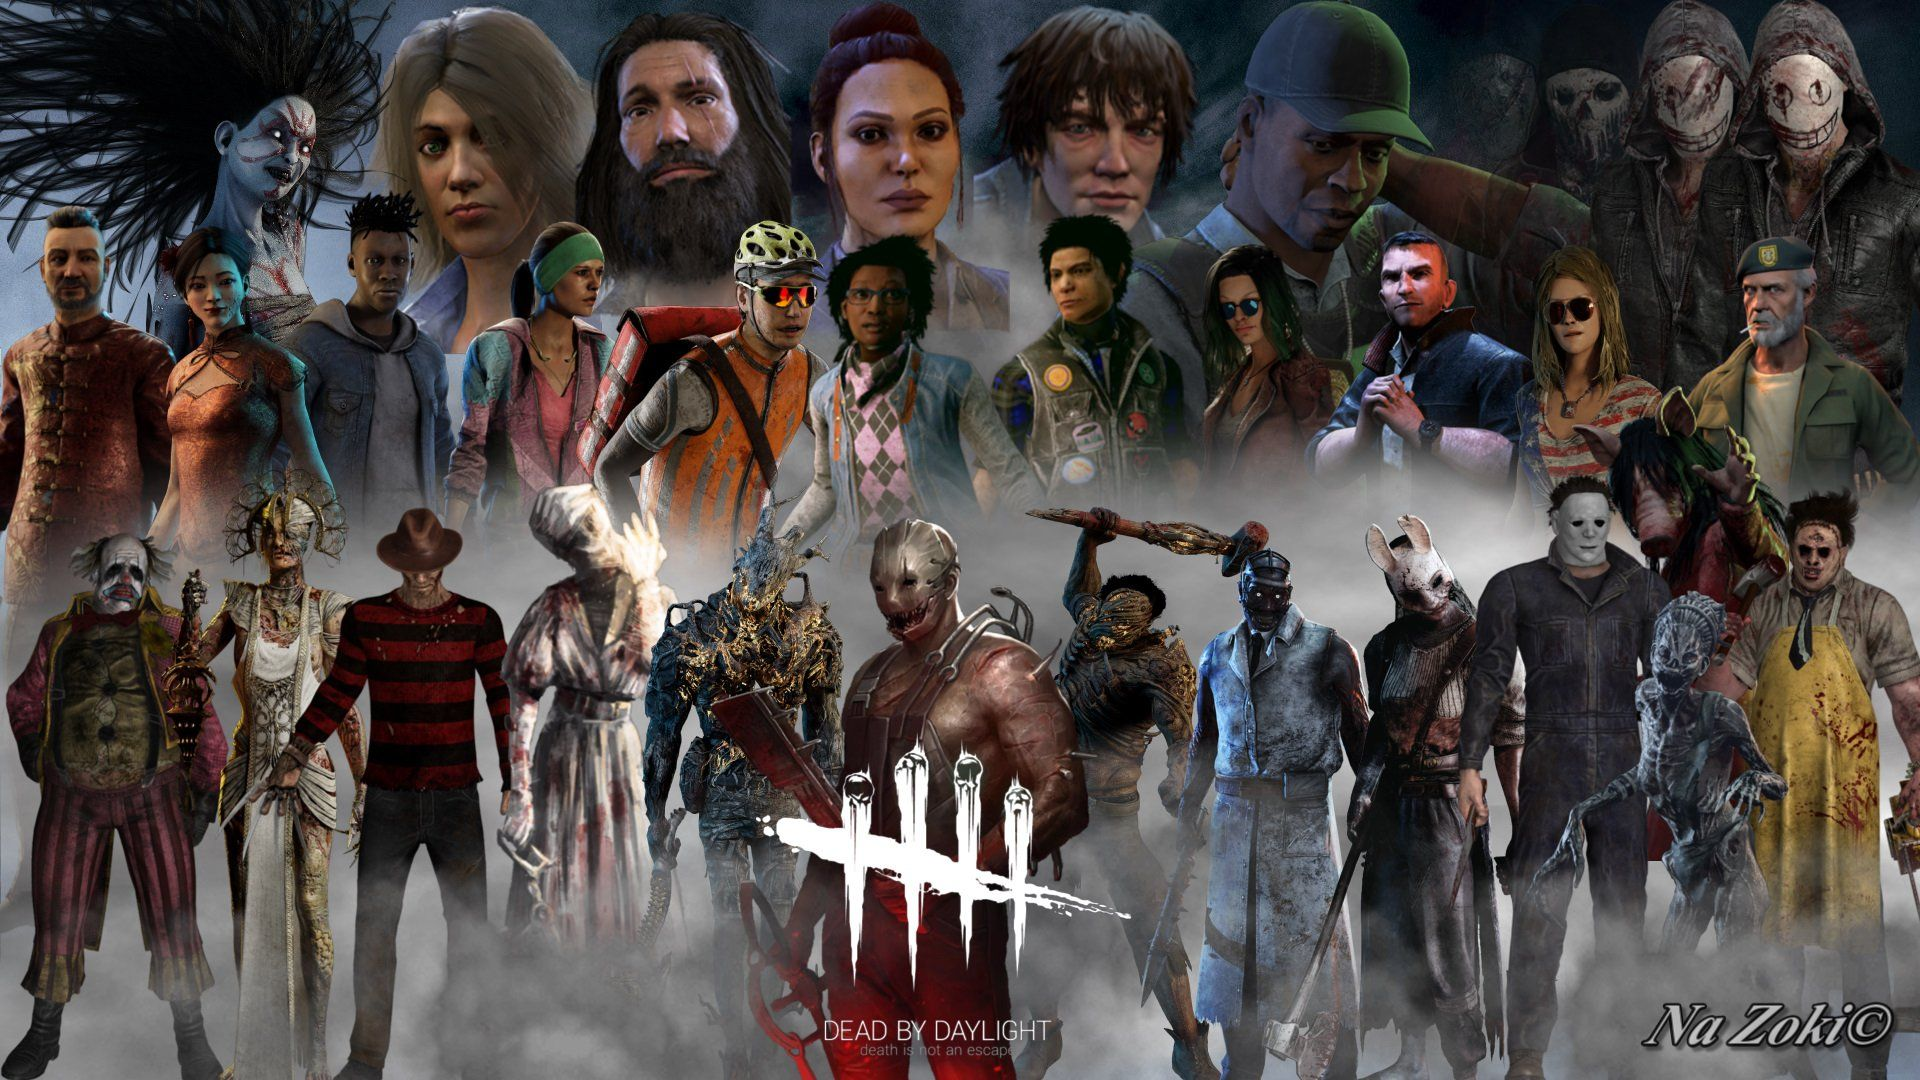 Dead By Daylight Killers Wallpapers - Wallpaper Cave